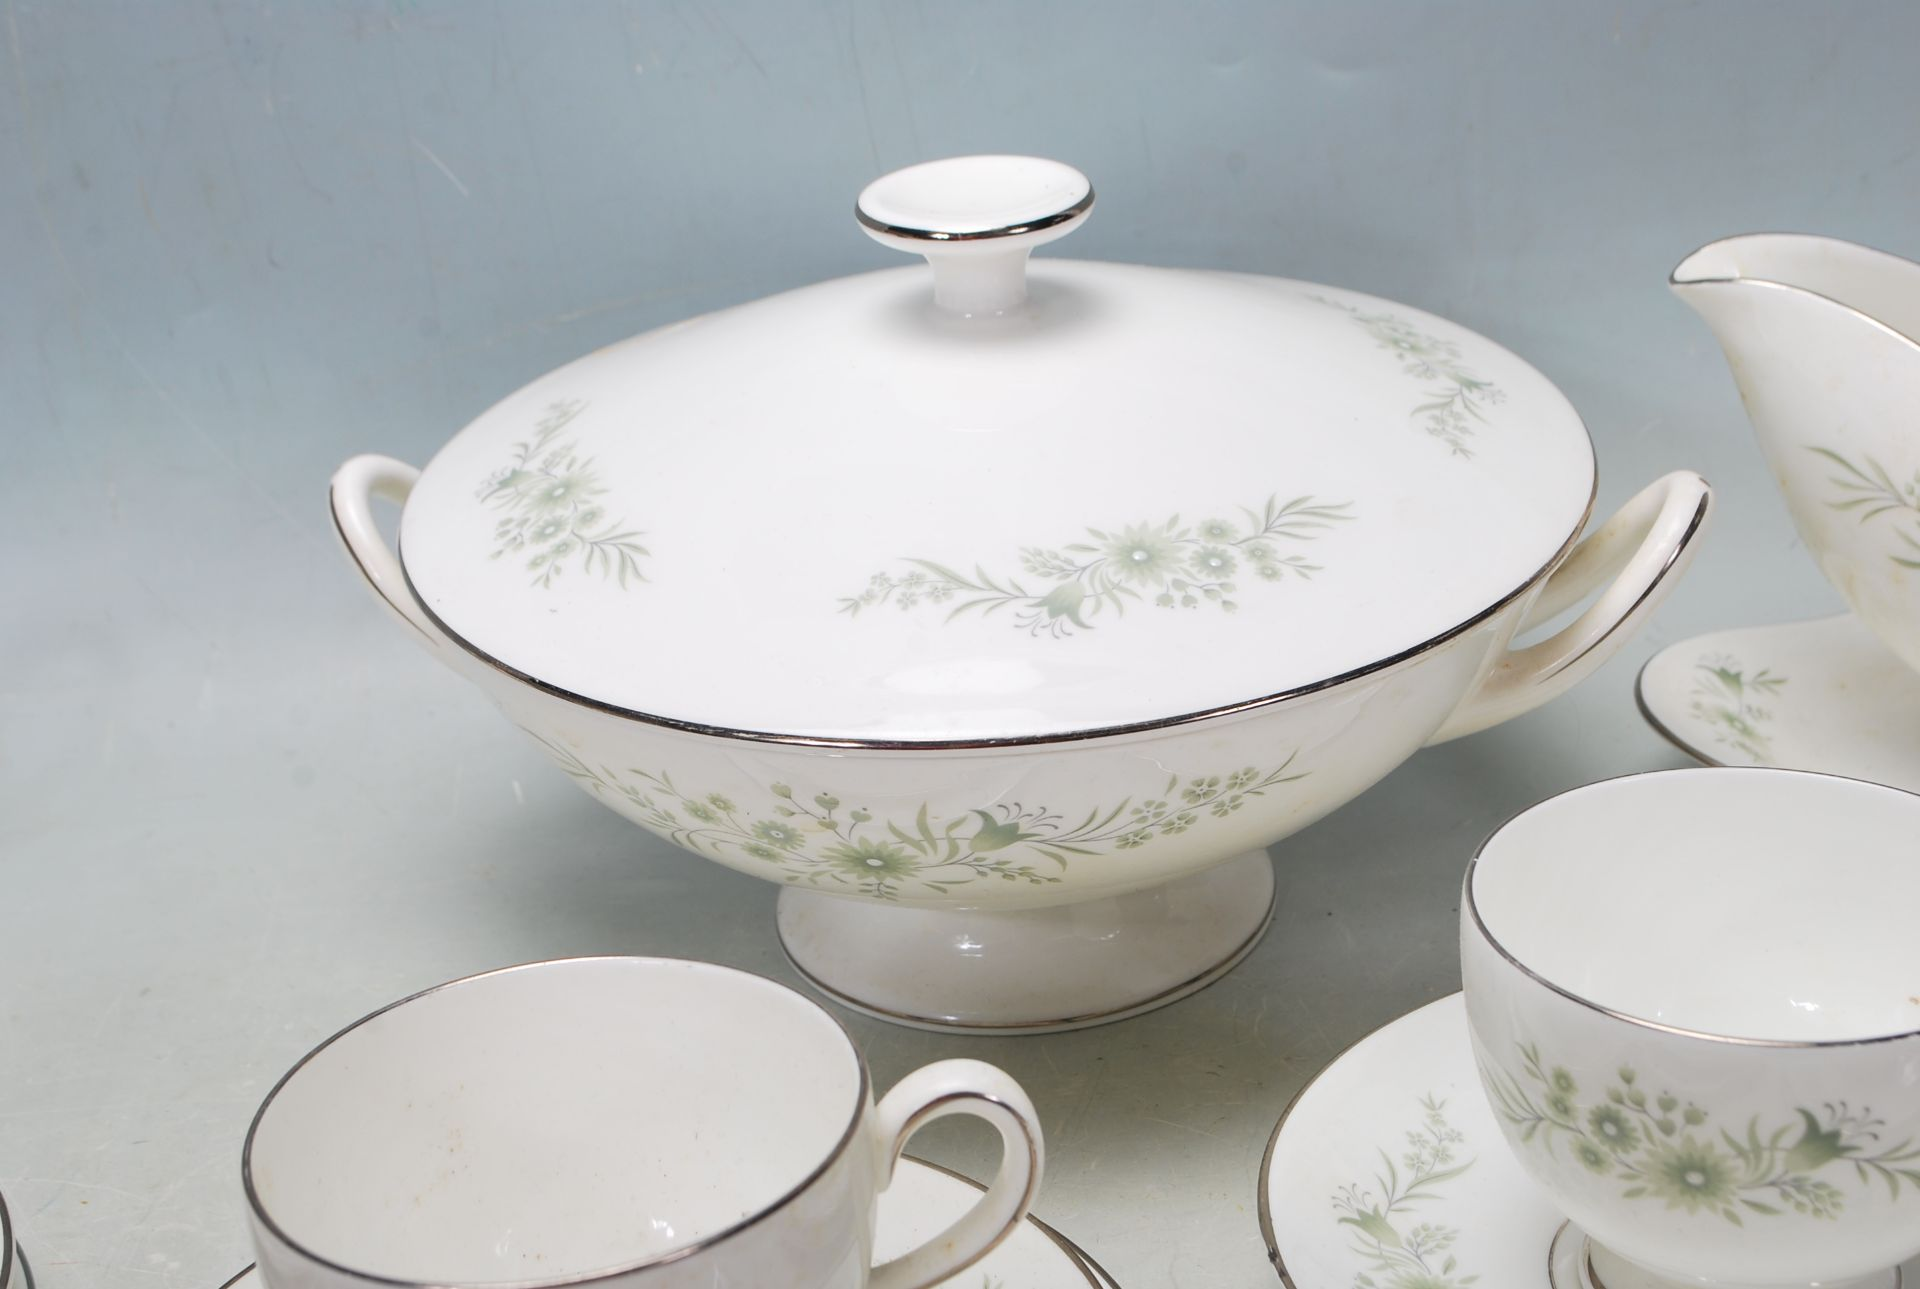 COLLECTION OF LATE 20TH CENTURY WEDGWOOD FINE BONE CHINA - Image 6 of 9